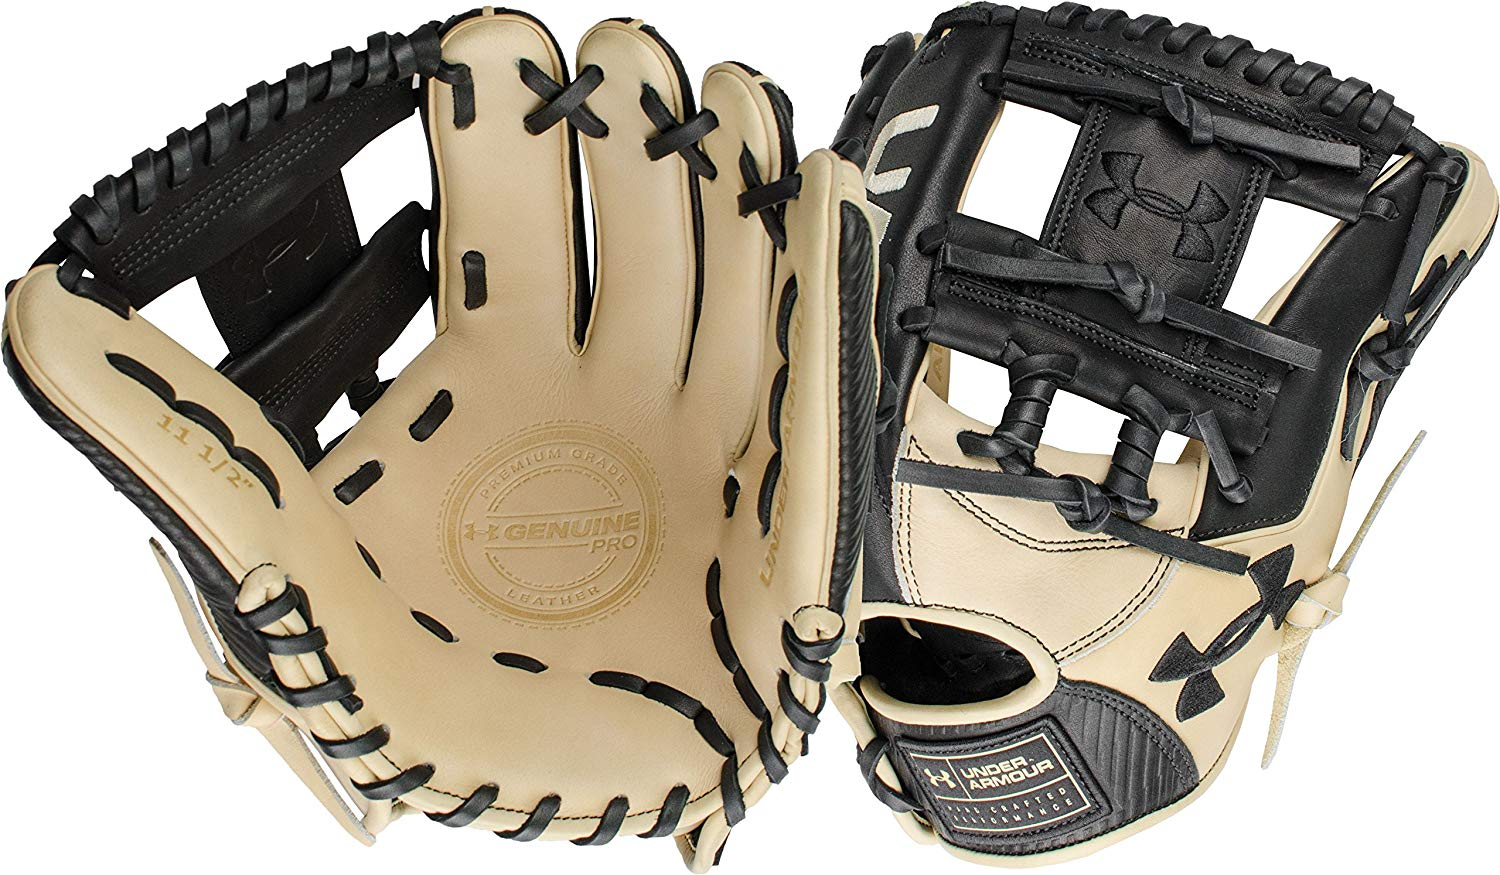 under-armour-genuine-pro-11-5-i-web-baseball-glove-right-hand-throw UAFGGP-1150IBKCR-RightHandThrow Under 029343046926 Black and cream design Right hand throw 11.5 inches infield model